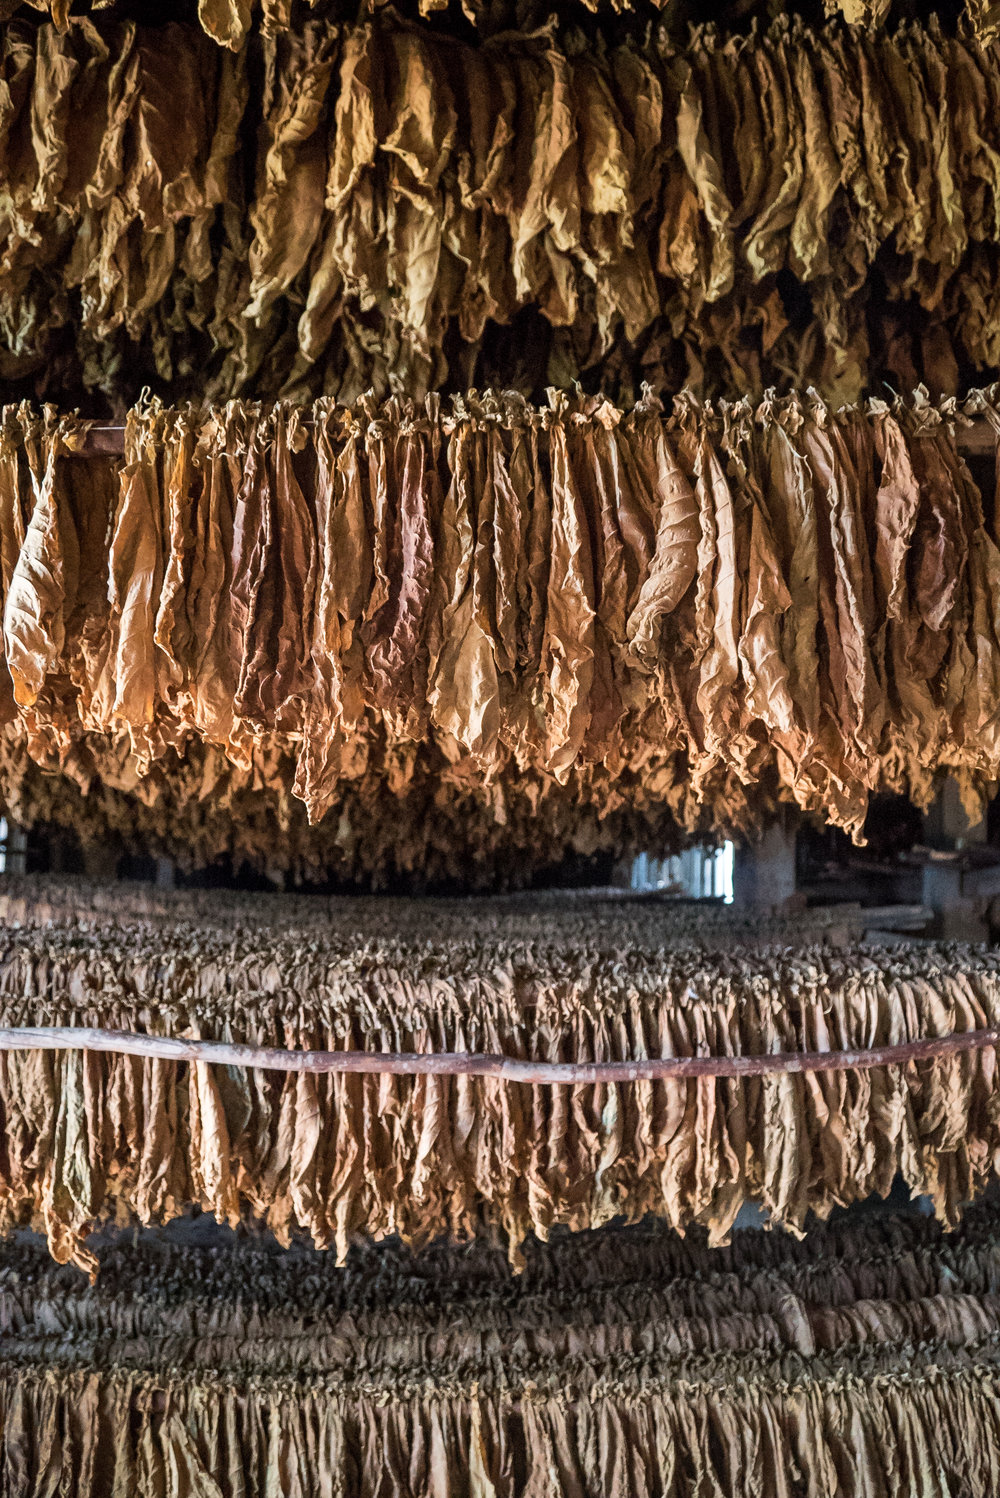 Tobacco farm in Viñales